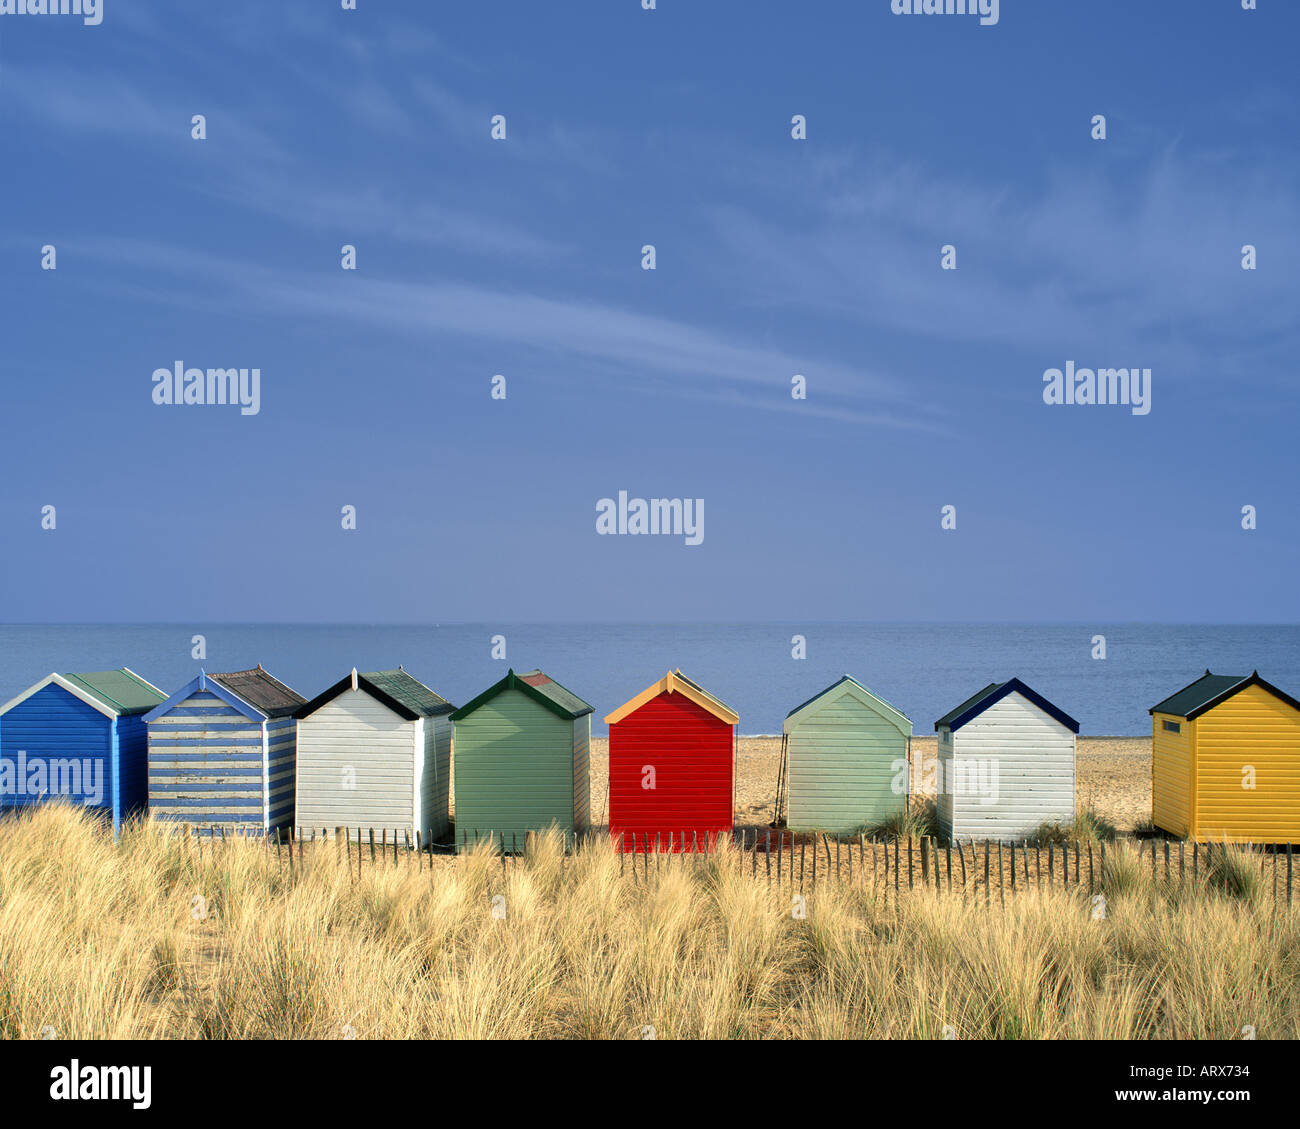 GB - SUFFOLK: Colourful beach huts at Southwold Stock Photo